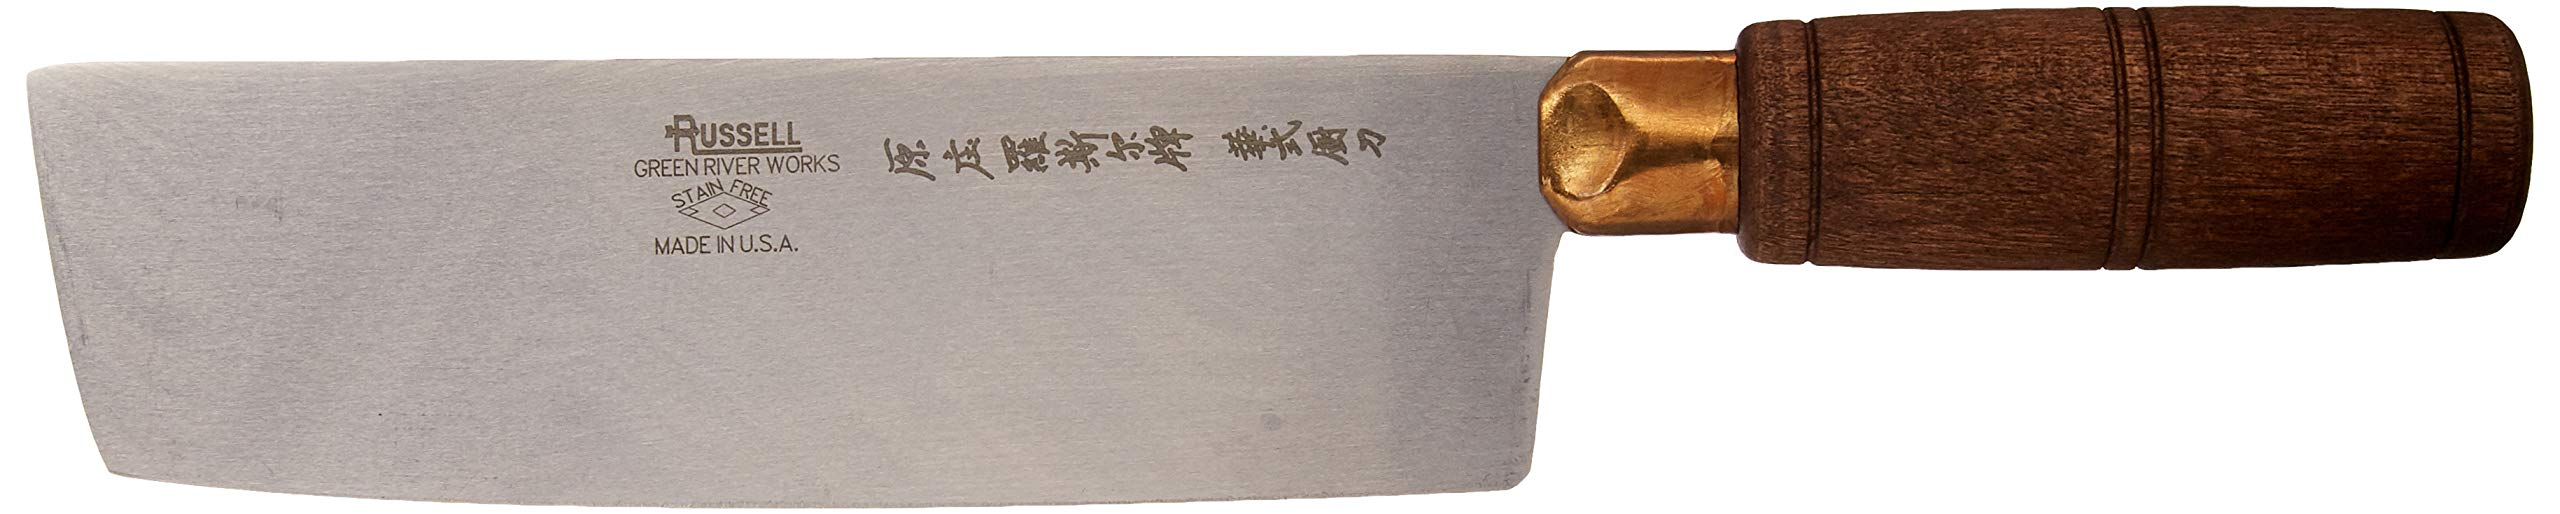 Dexter Russell S5197 Traditional 7'' Chinese Chefs Knife by Dexter-Russell